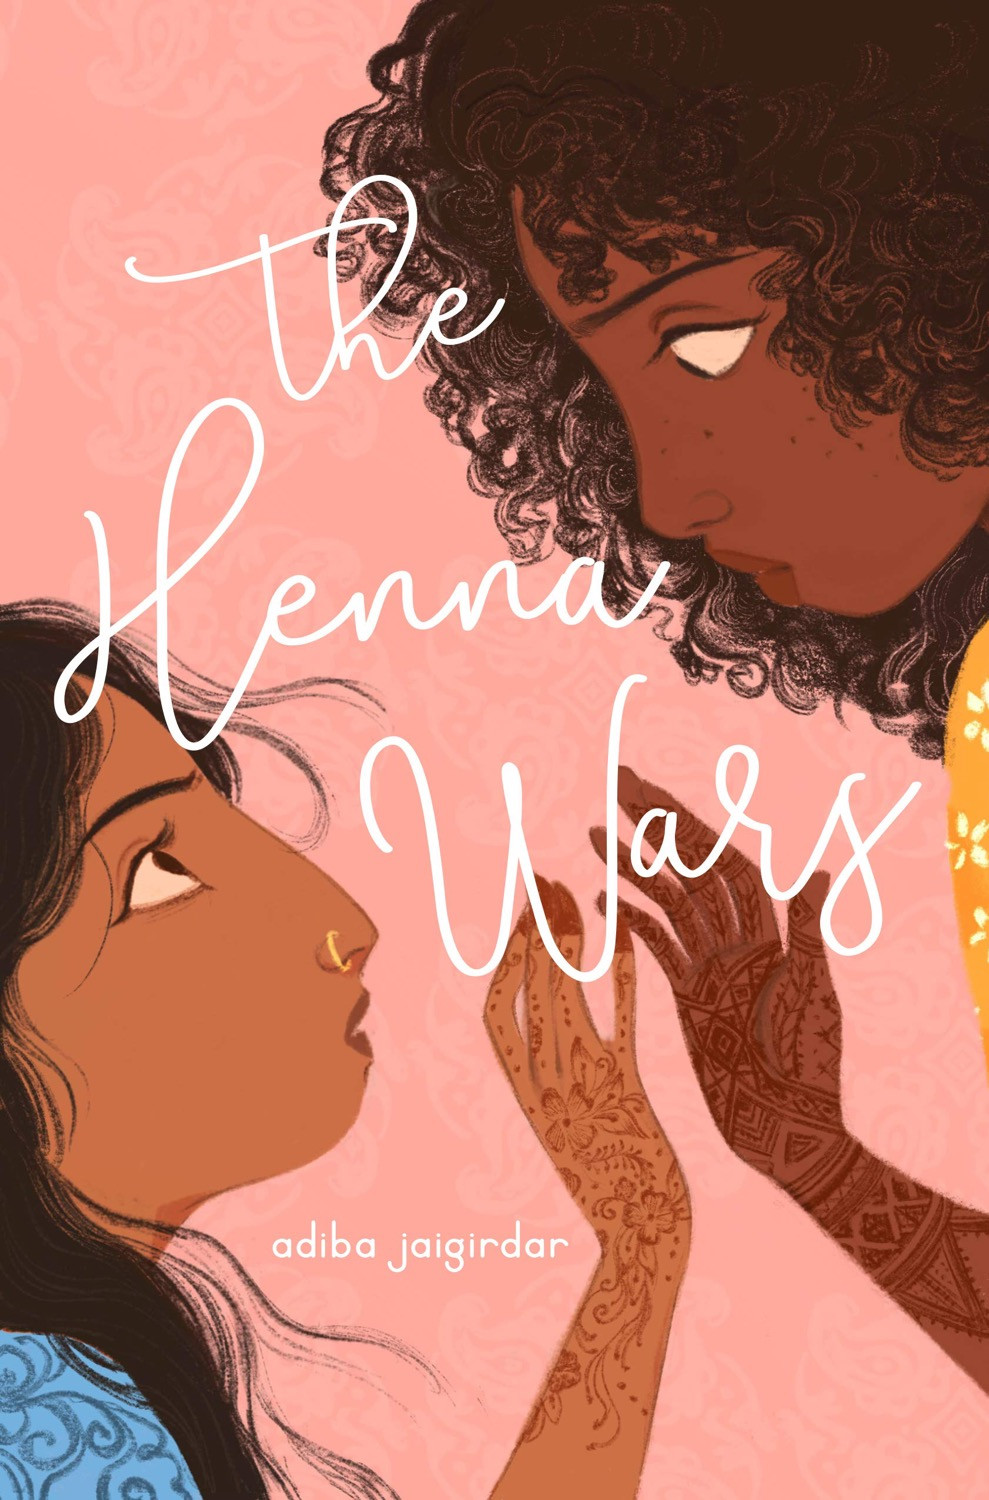 The Henna Wars by Adiba Jaigirdar. Book Cover. May YA Releases 2020. Two Arts in a World.